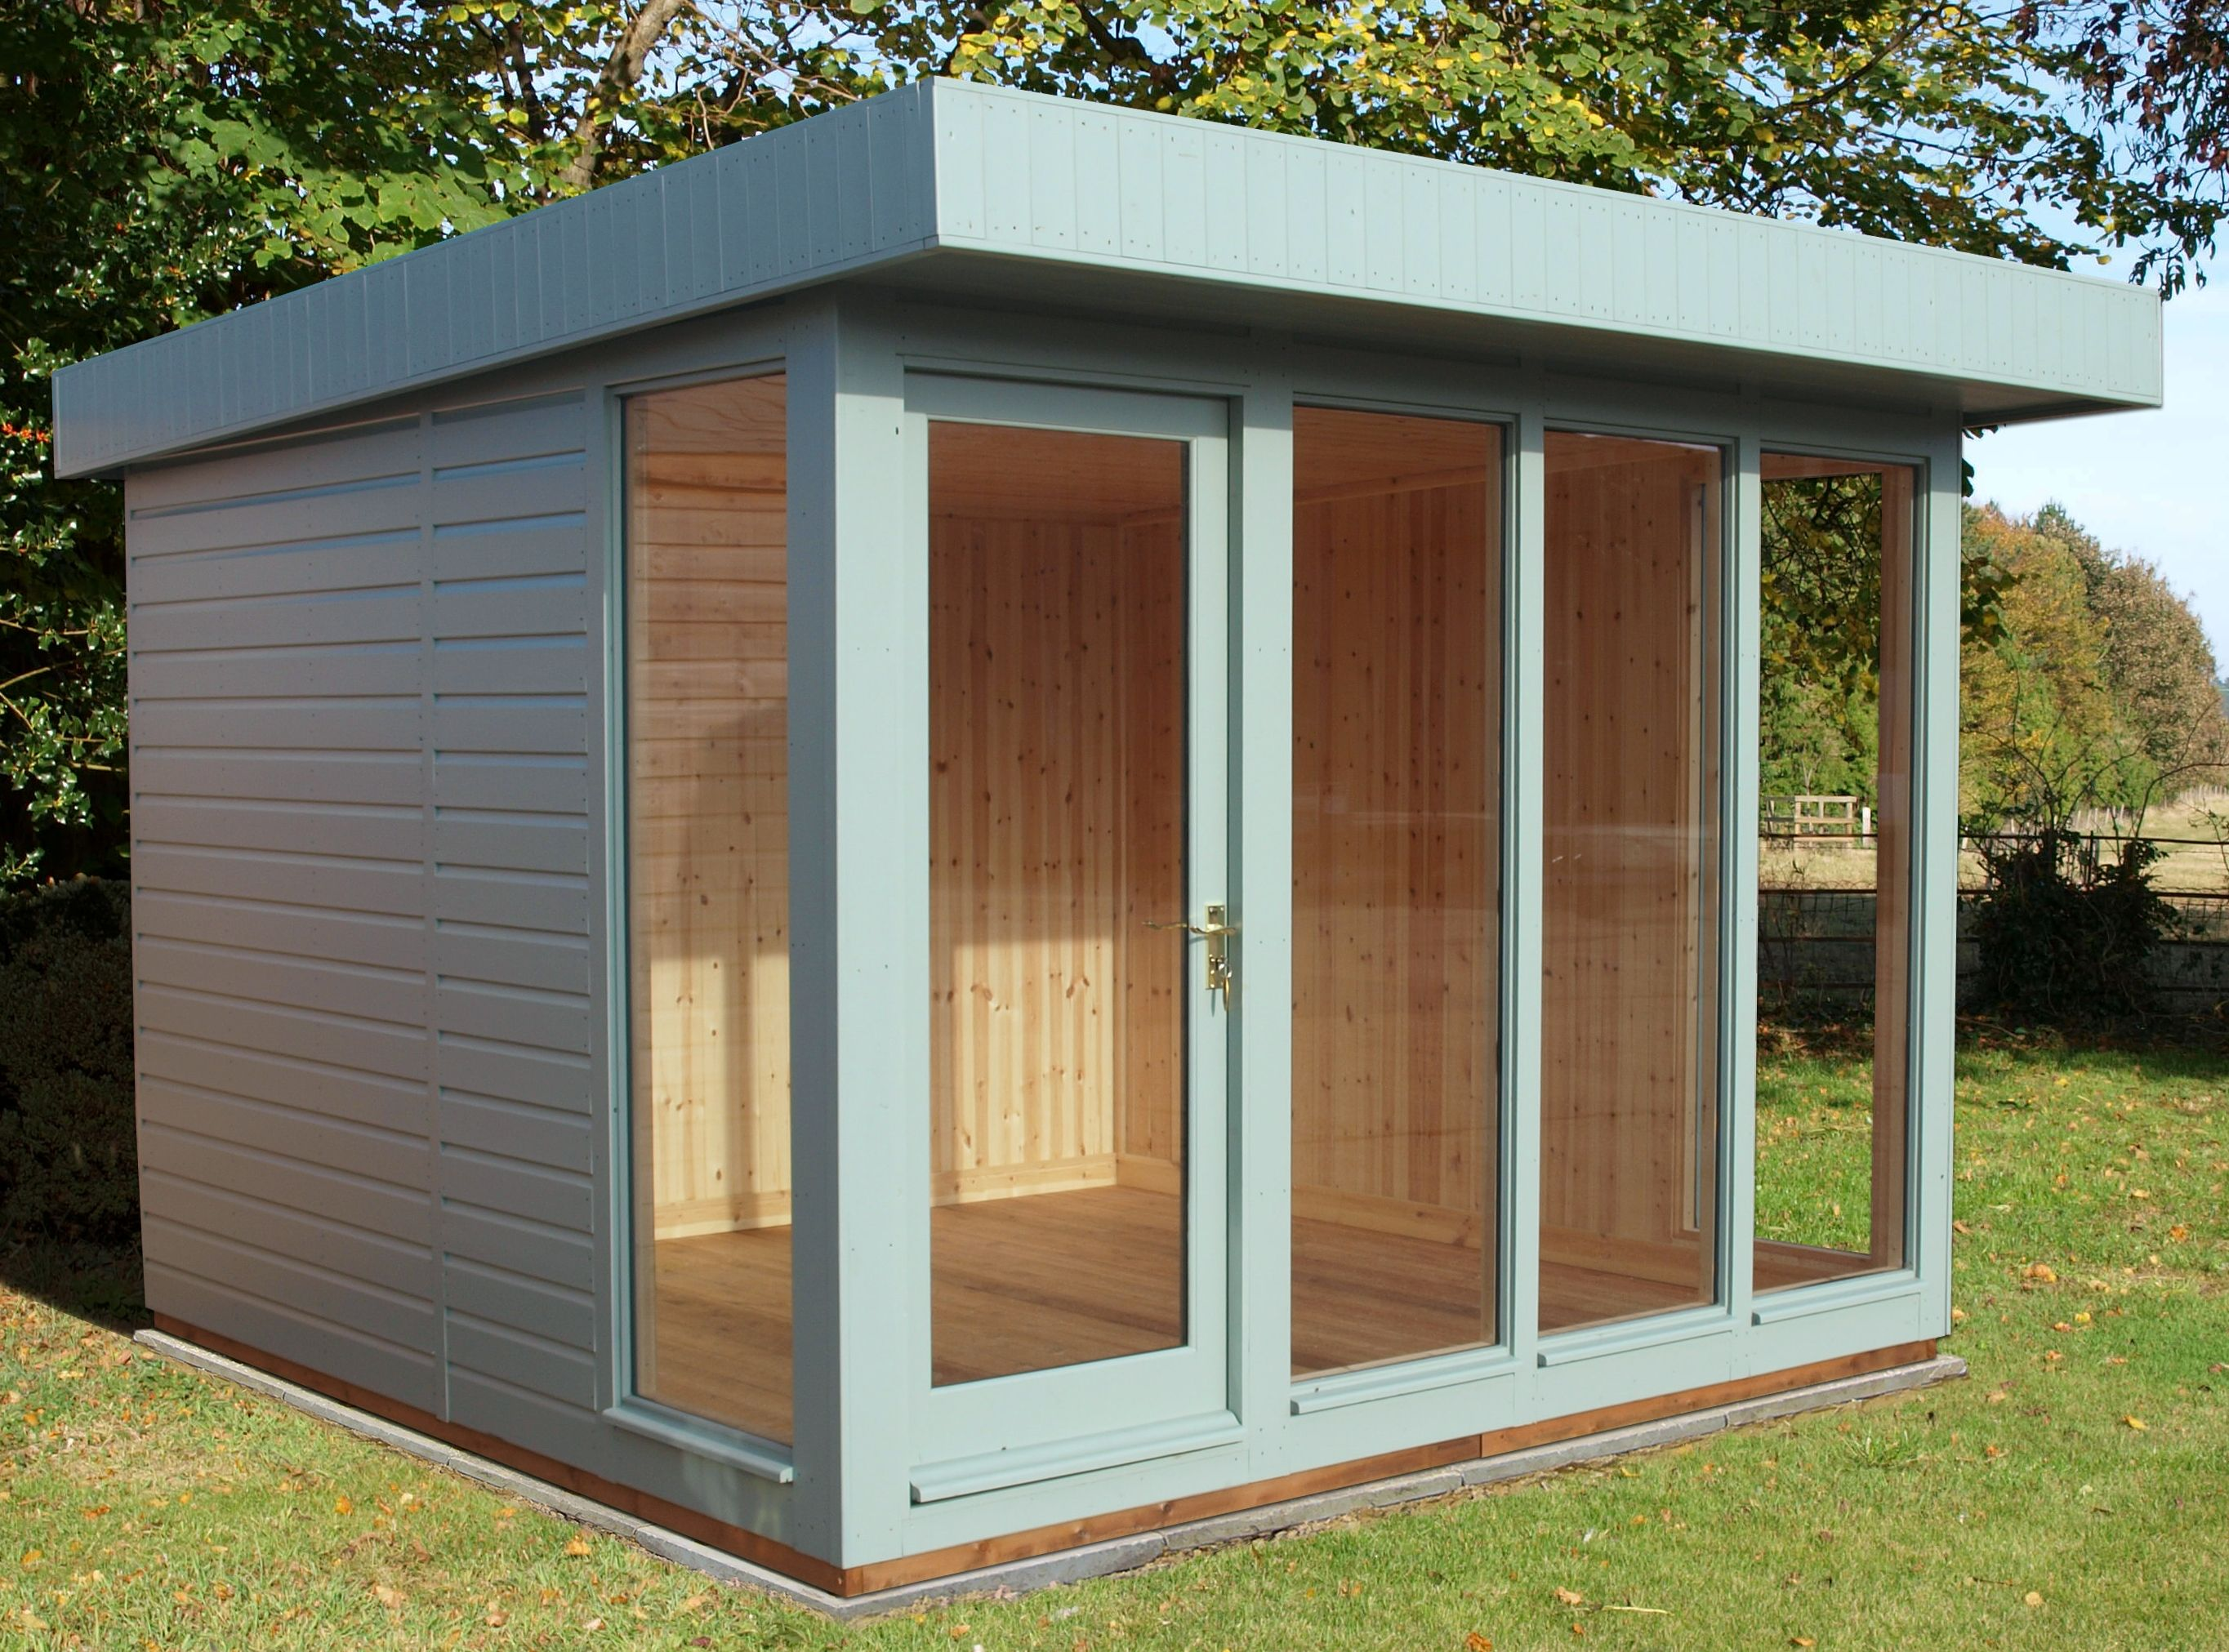 backyard shed designs Contemporary Garden Sheds Where To